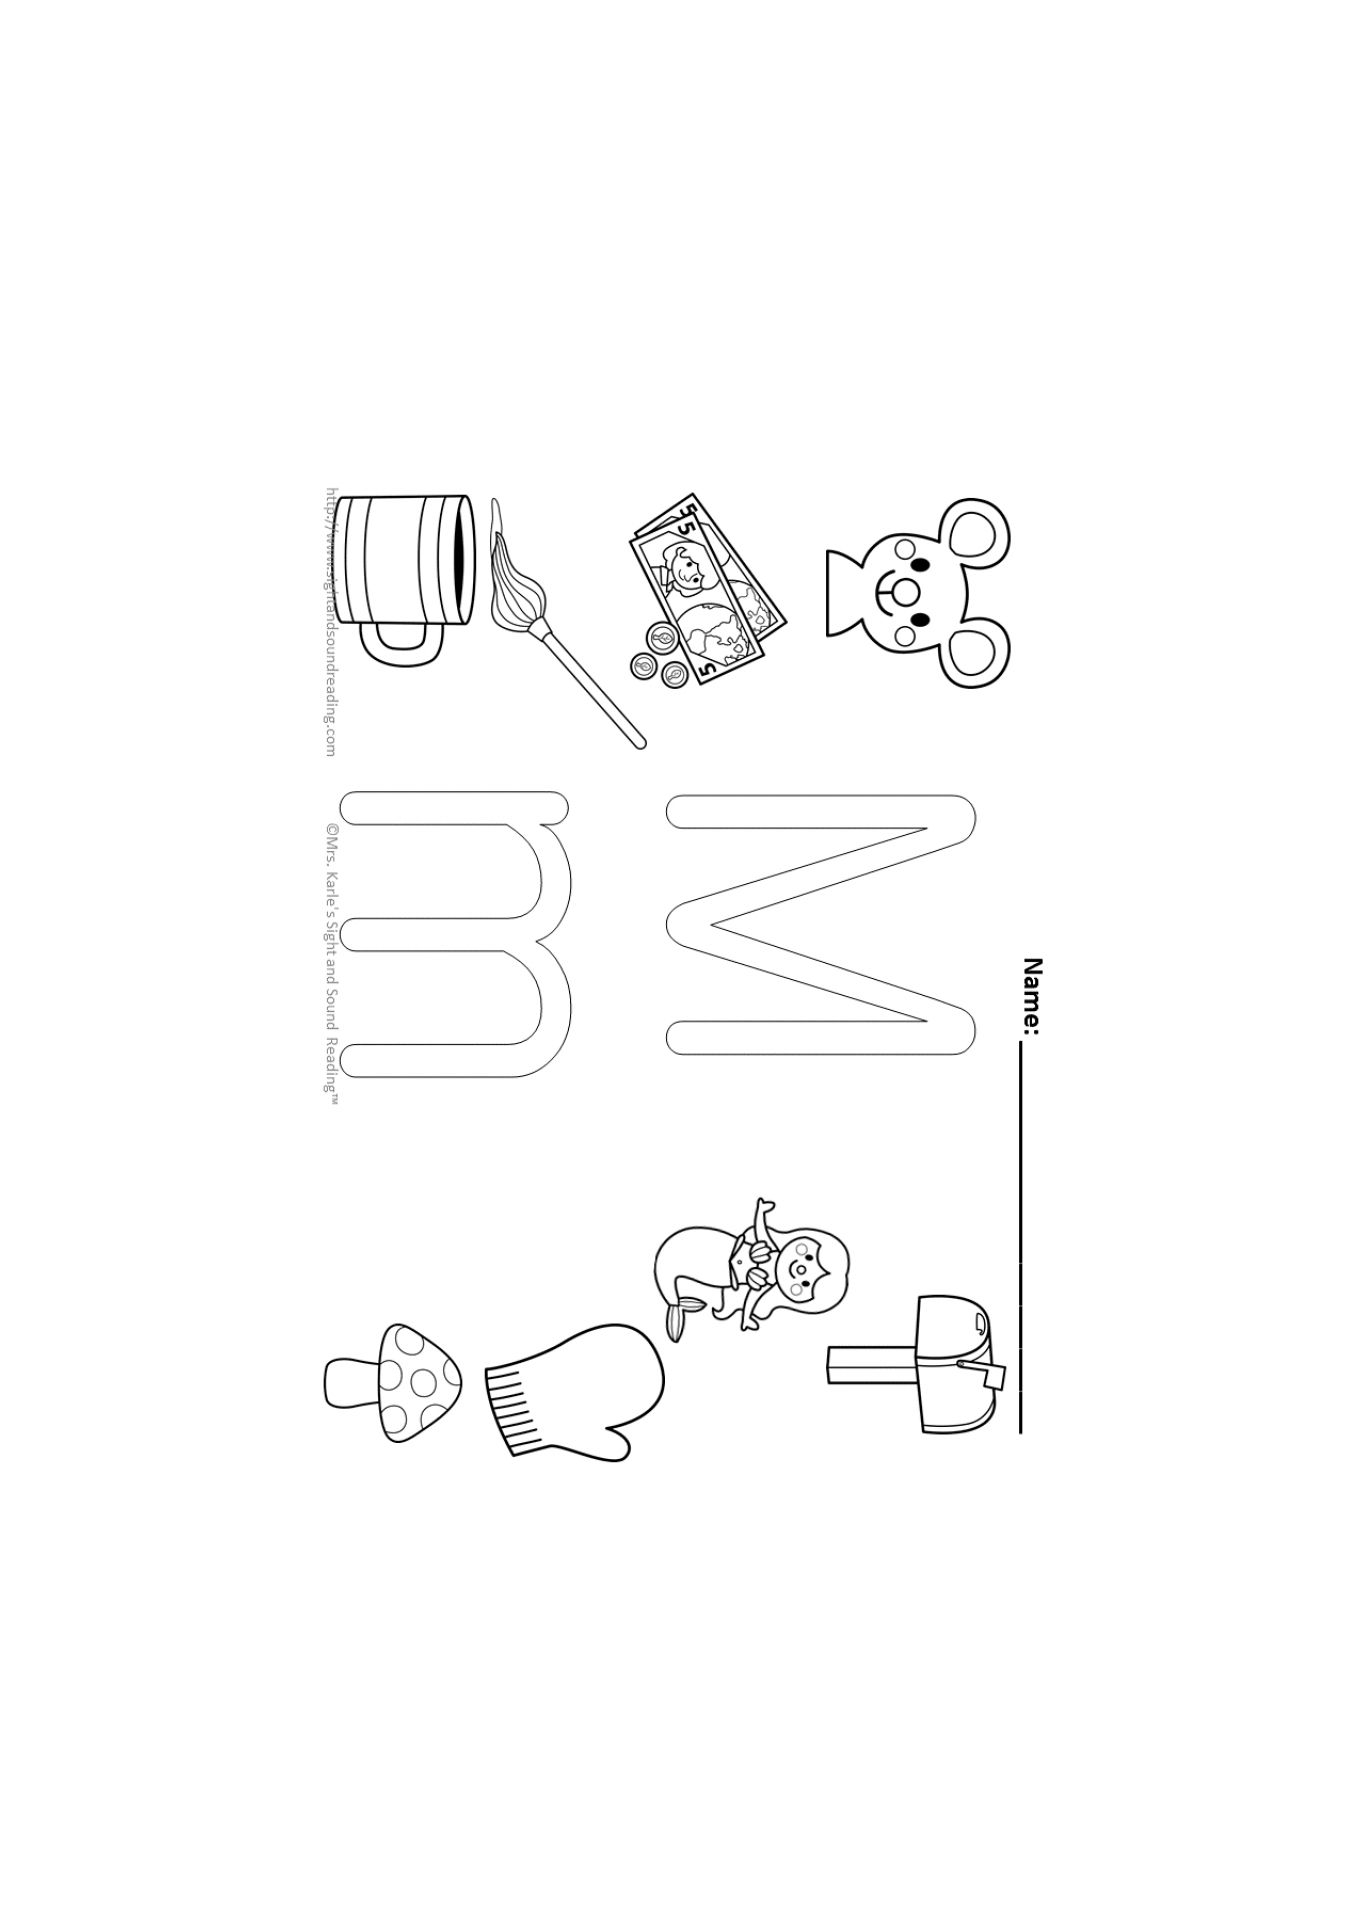 Stylish Letter M Coloring Pages Intended To Invigorate To